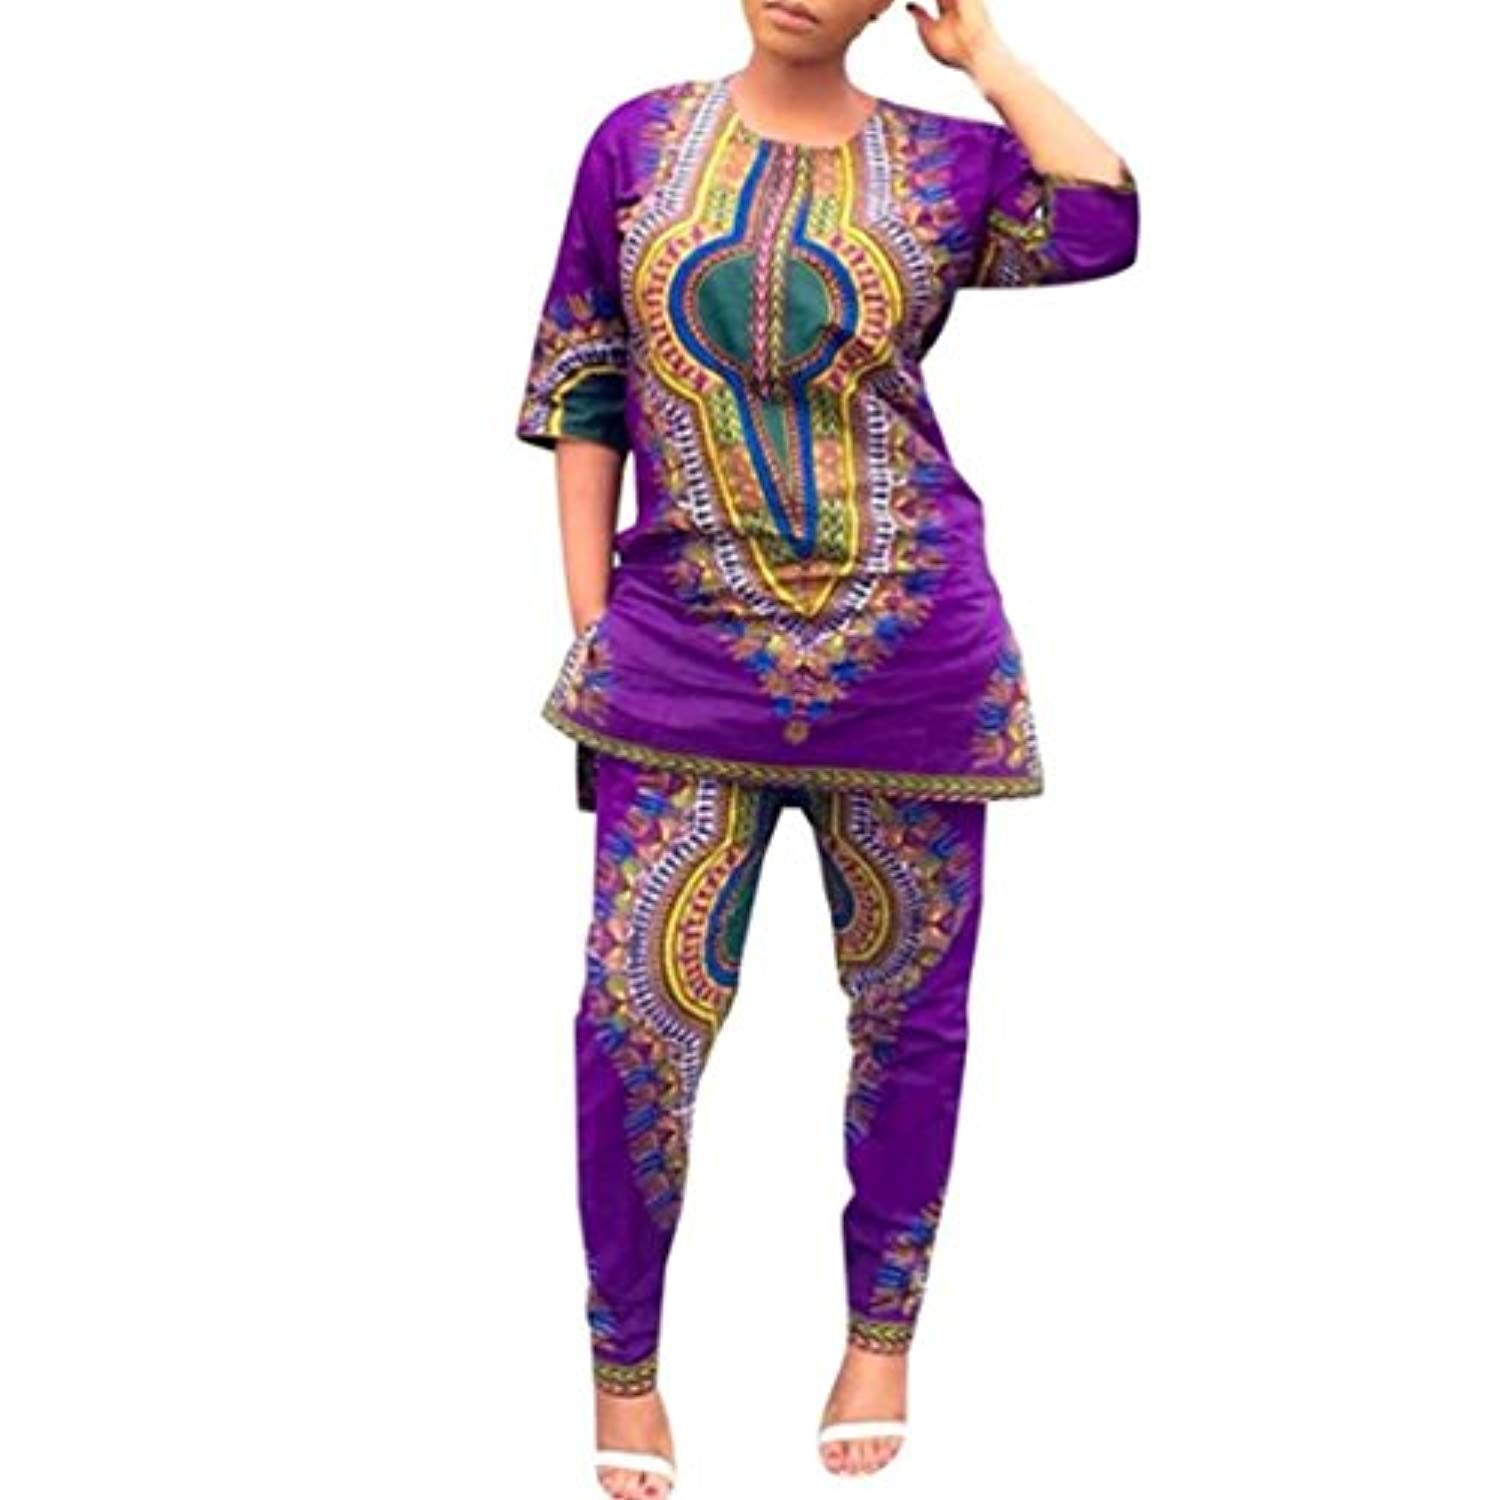 Sexyp-dress Women Dress,Sexyp Fashion African Print Casual Straight Print Dress Tops+Pants - Ufumbuzi - Home